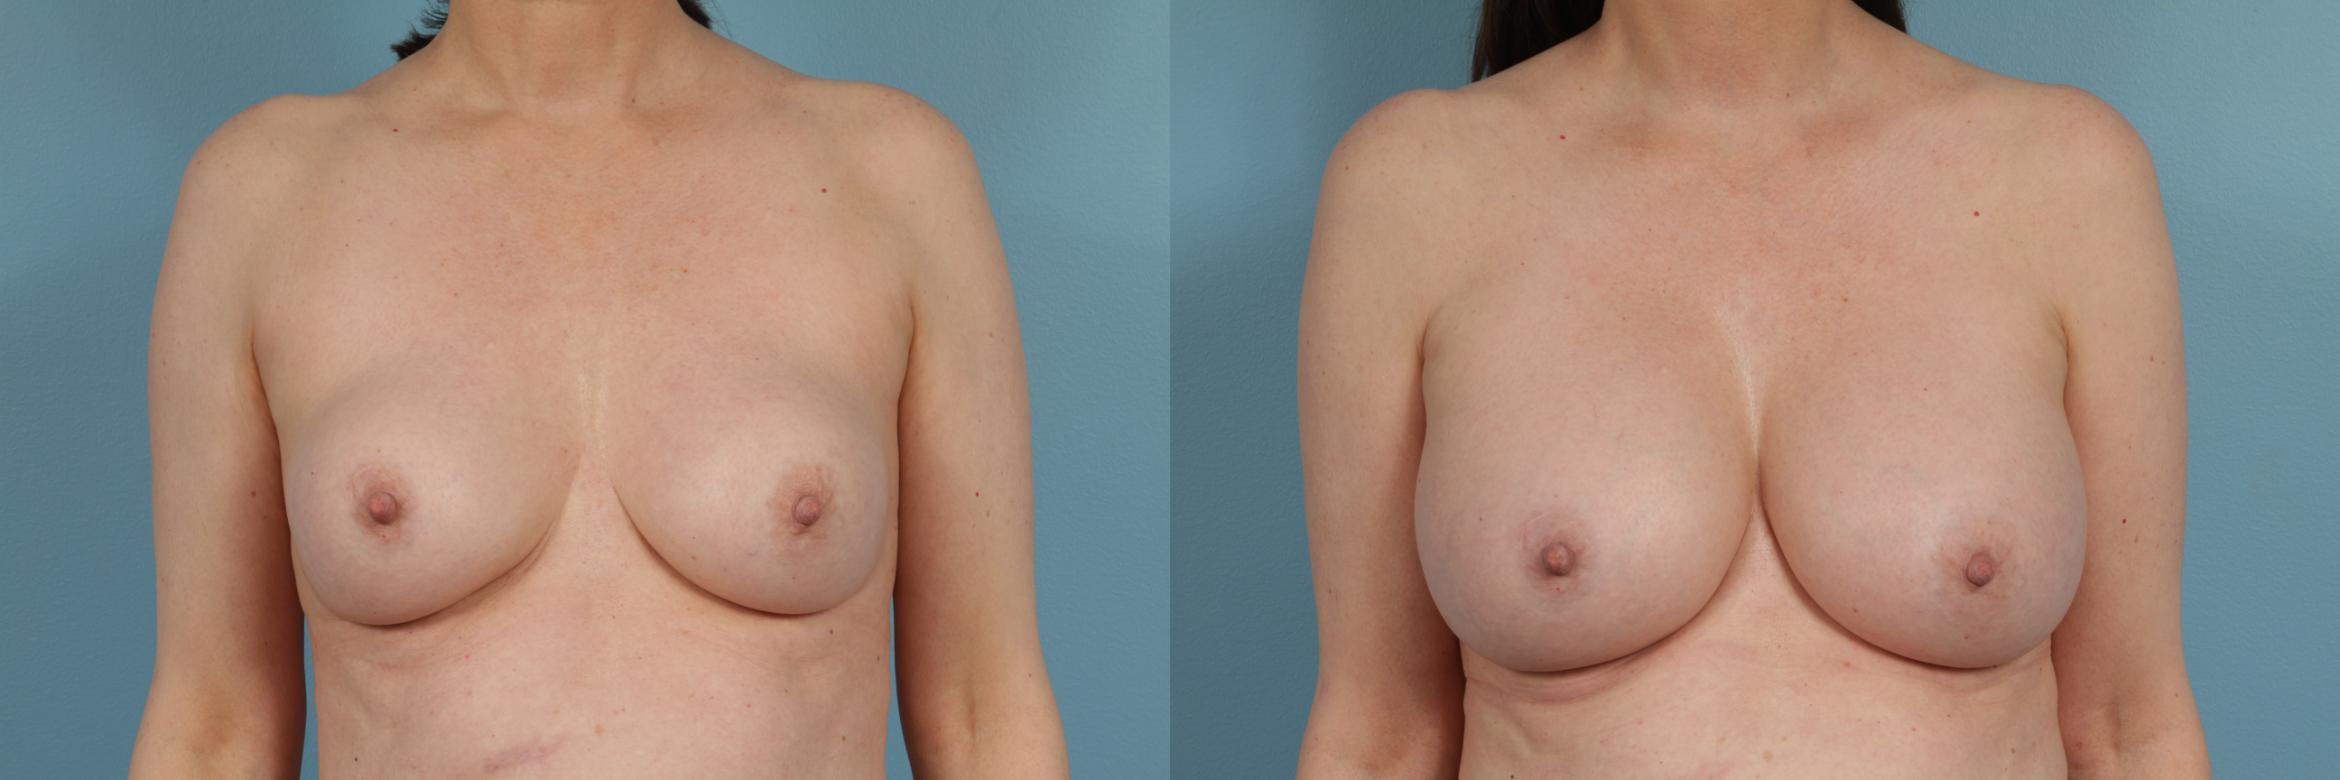 Breast Implant Replacement Case 235 Before & After View #1 | Chicago, IL | TLKM Plastic Surgery